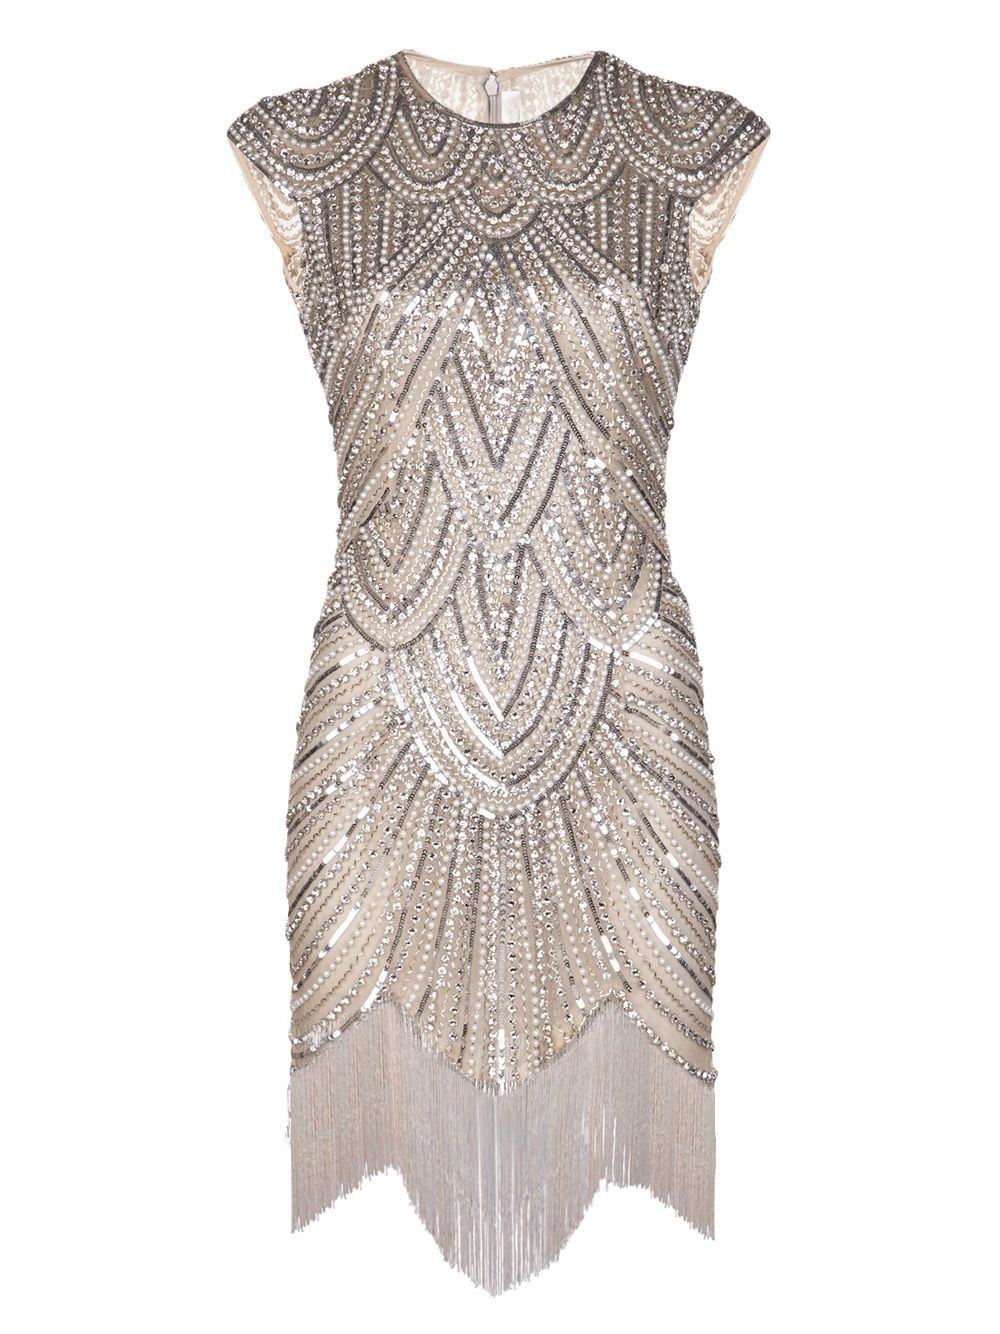 Vintage Inspired 1920s Gastby Handmade Crystals Sequined Embellished Fringed Flapper Party Dress